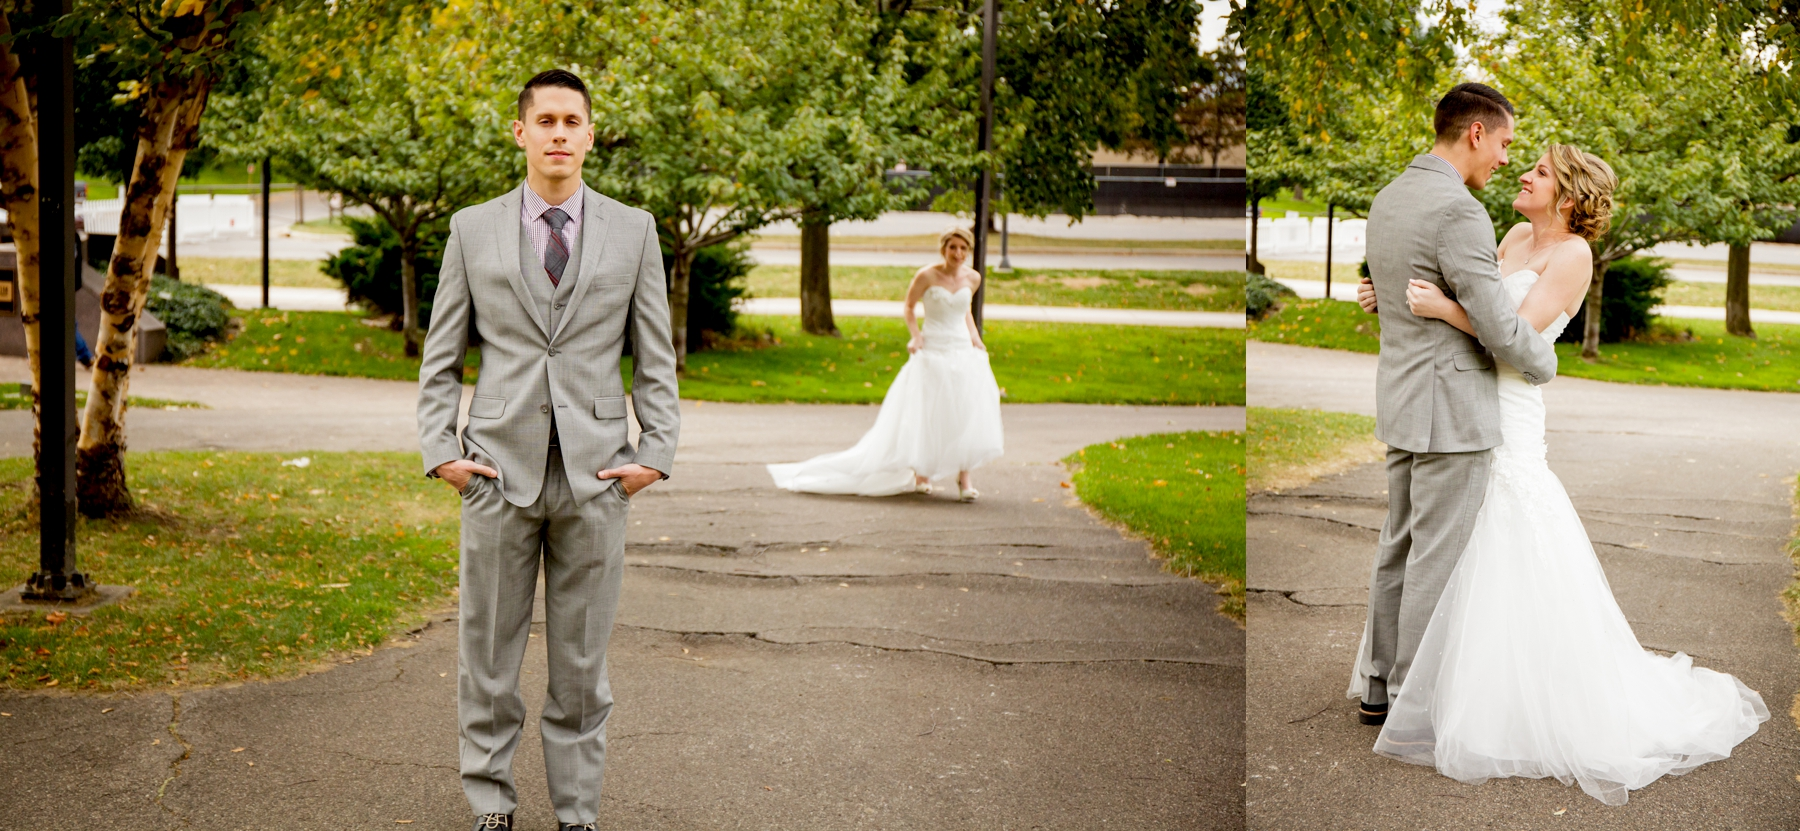 Brandon_Shafer_Photography_Kristen_Corey_Downtown_Grand_Rapids_Fall_Wedding0015.JPG